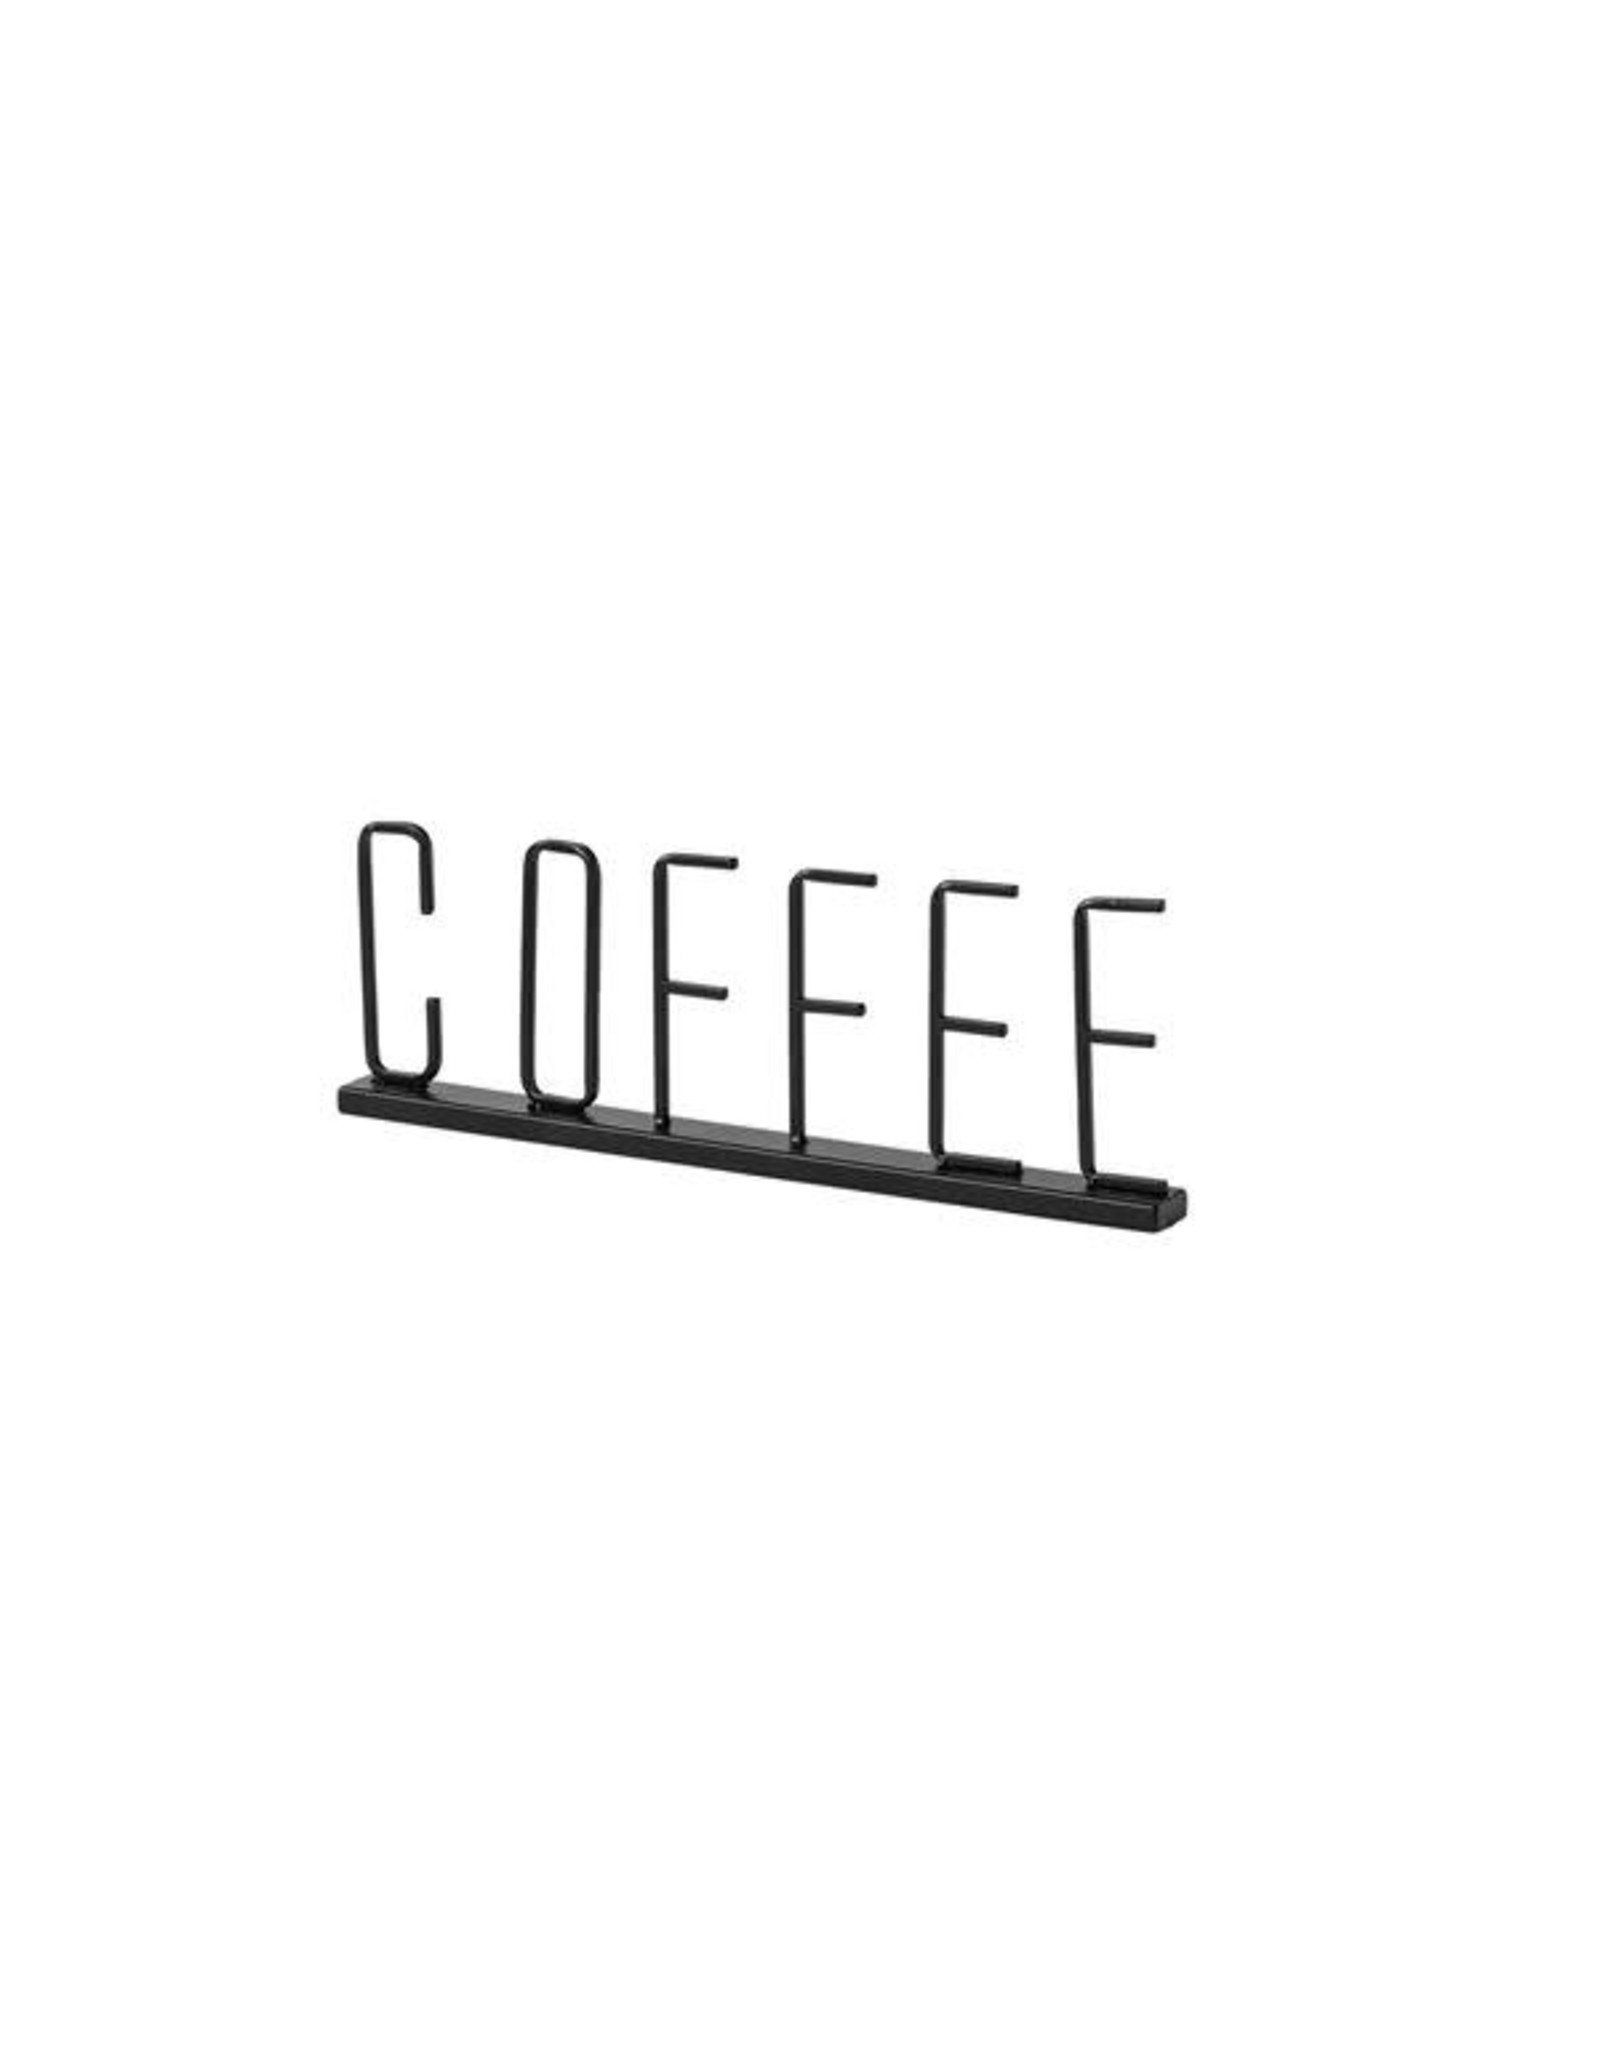 TCE Coffee Sign